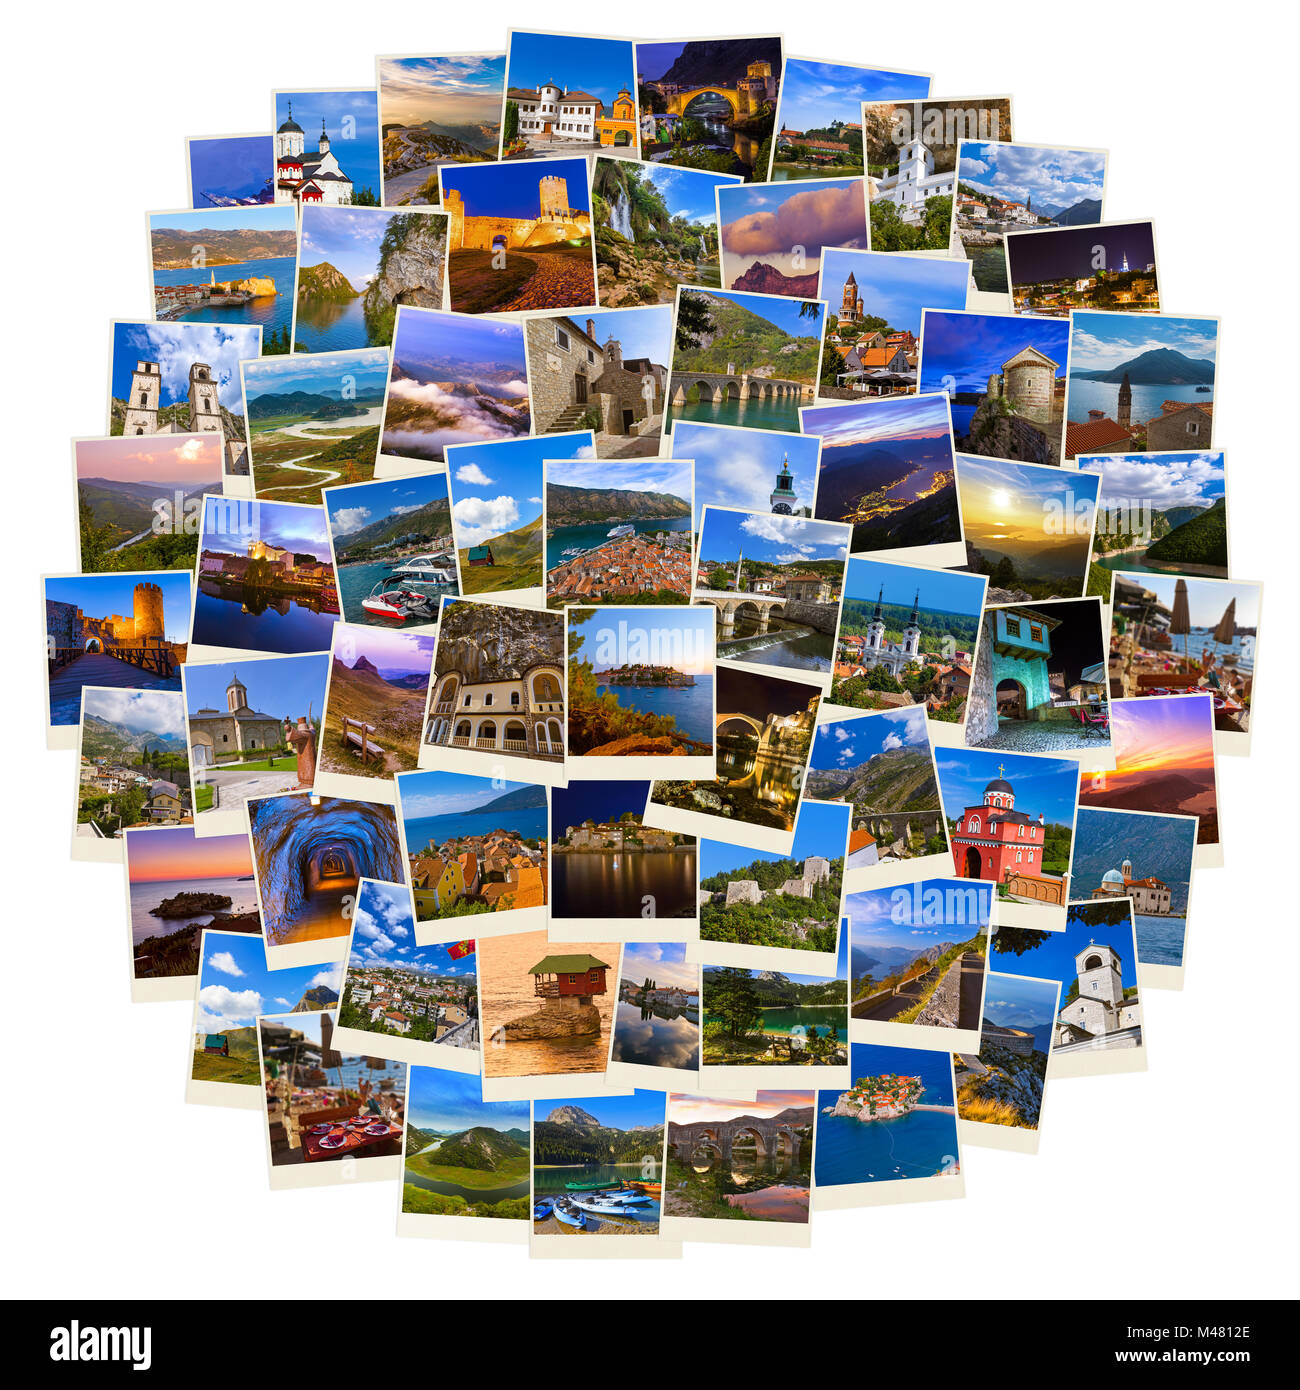 Stack of Montenegro and Bosnia travel images (my photos) - Stock Image